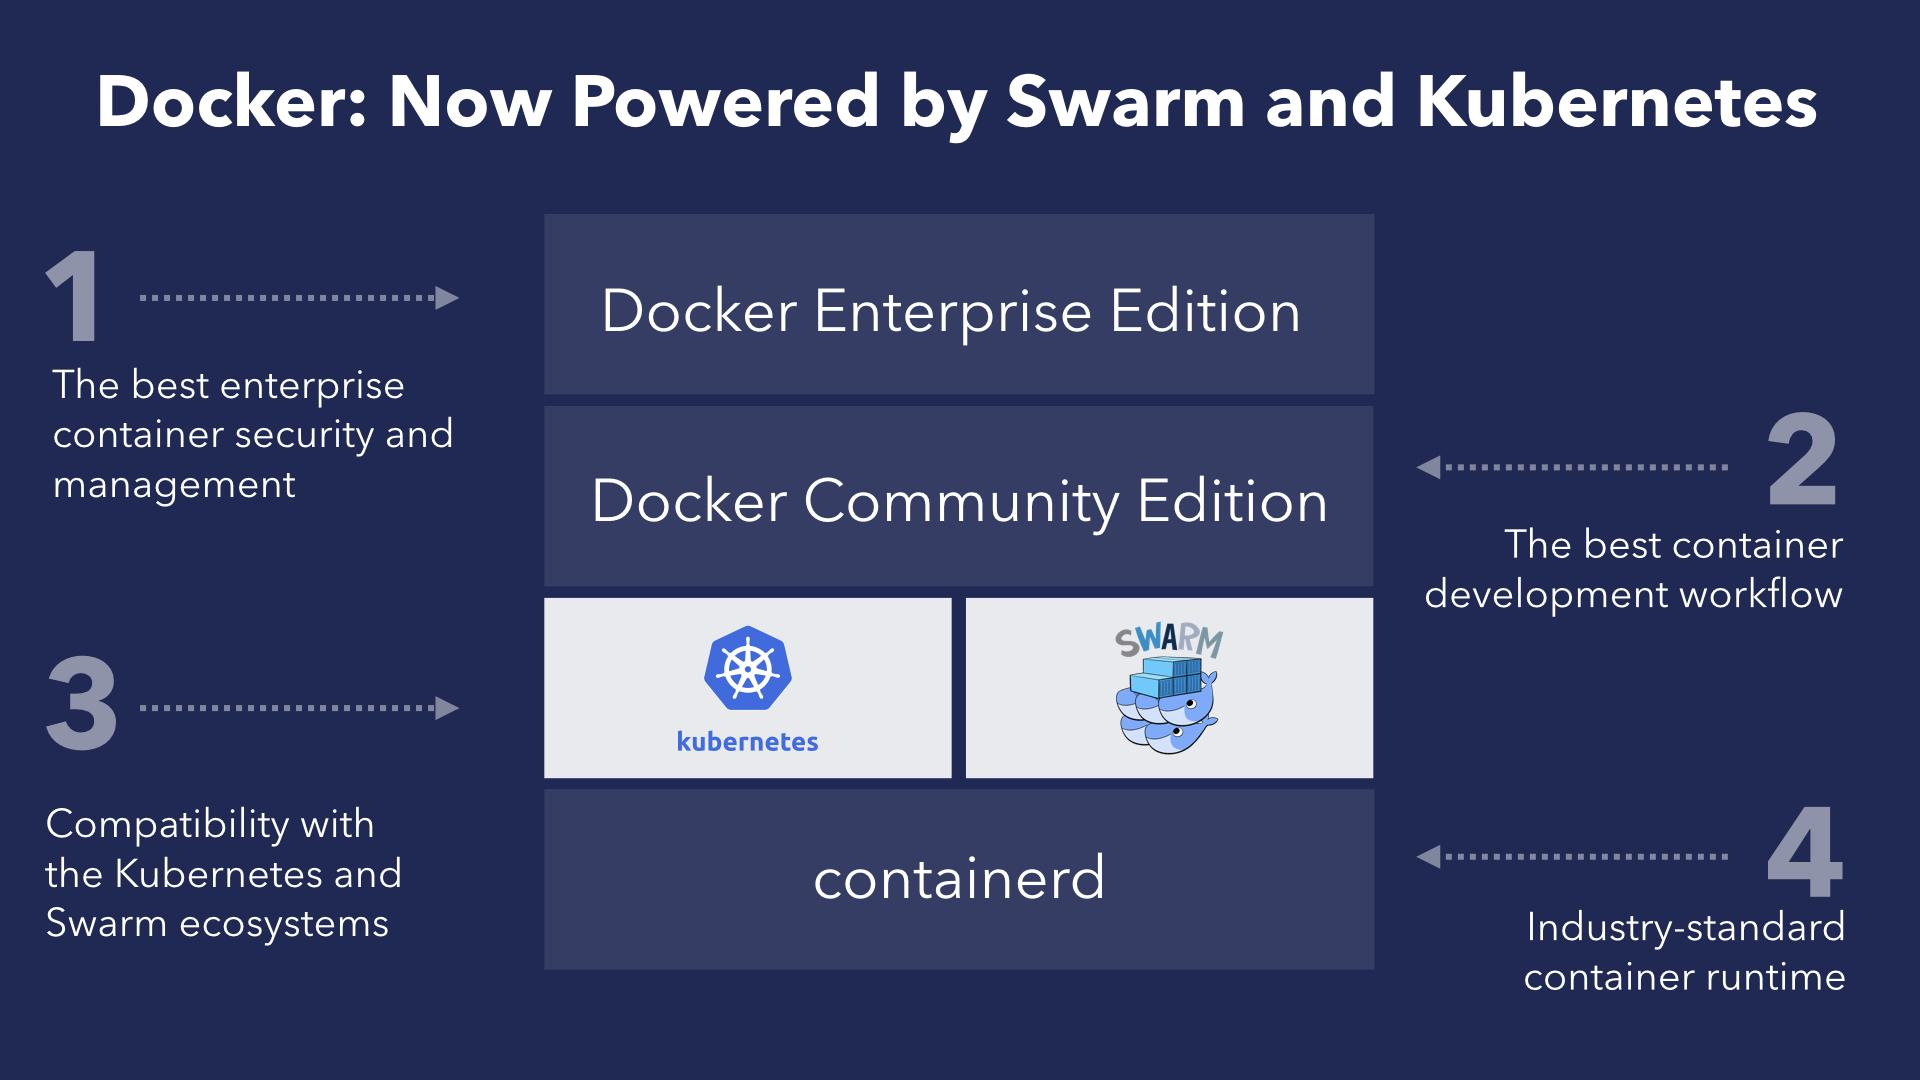 Developers can now build applications with Docker and use Kubernetes (or Swarm) to test and deploy.